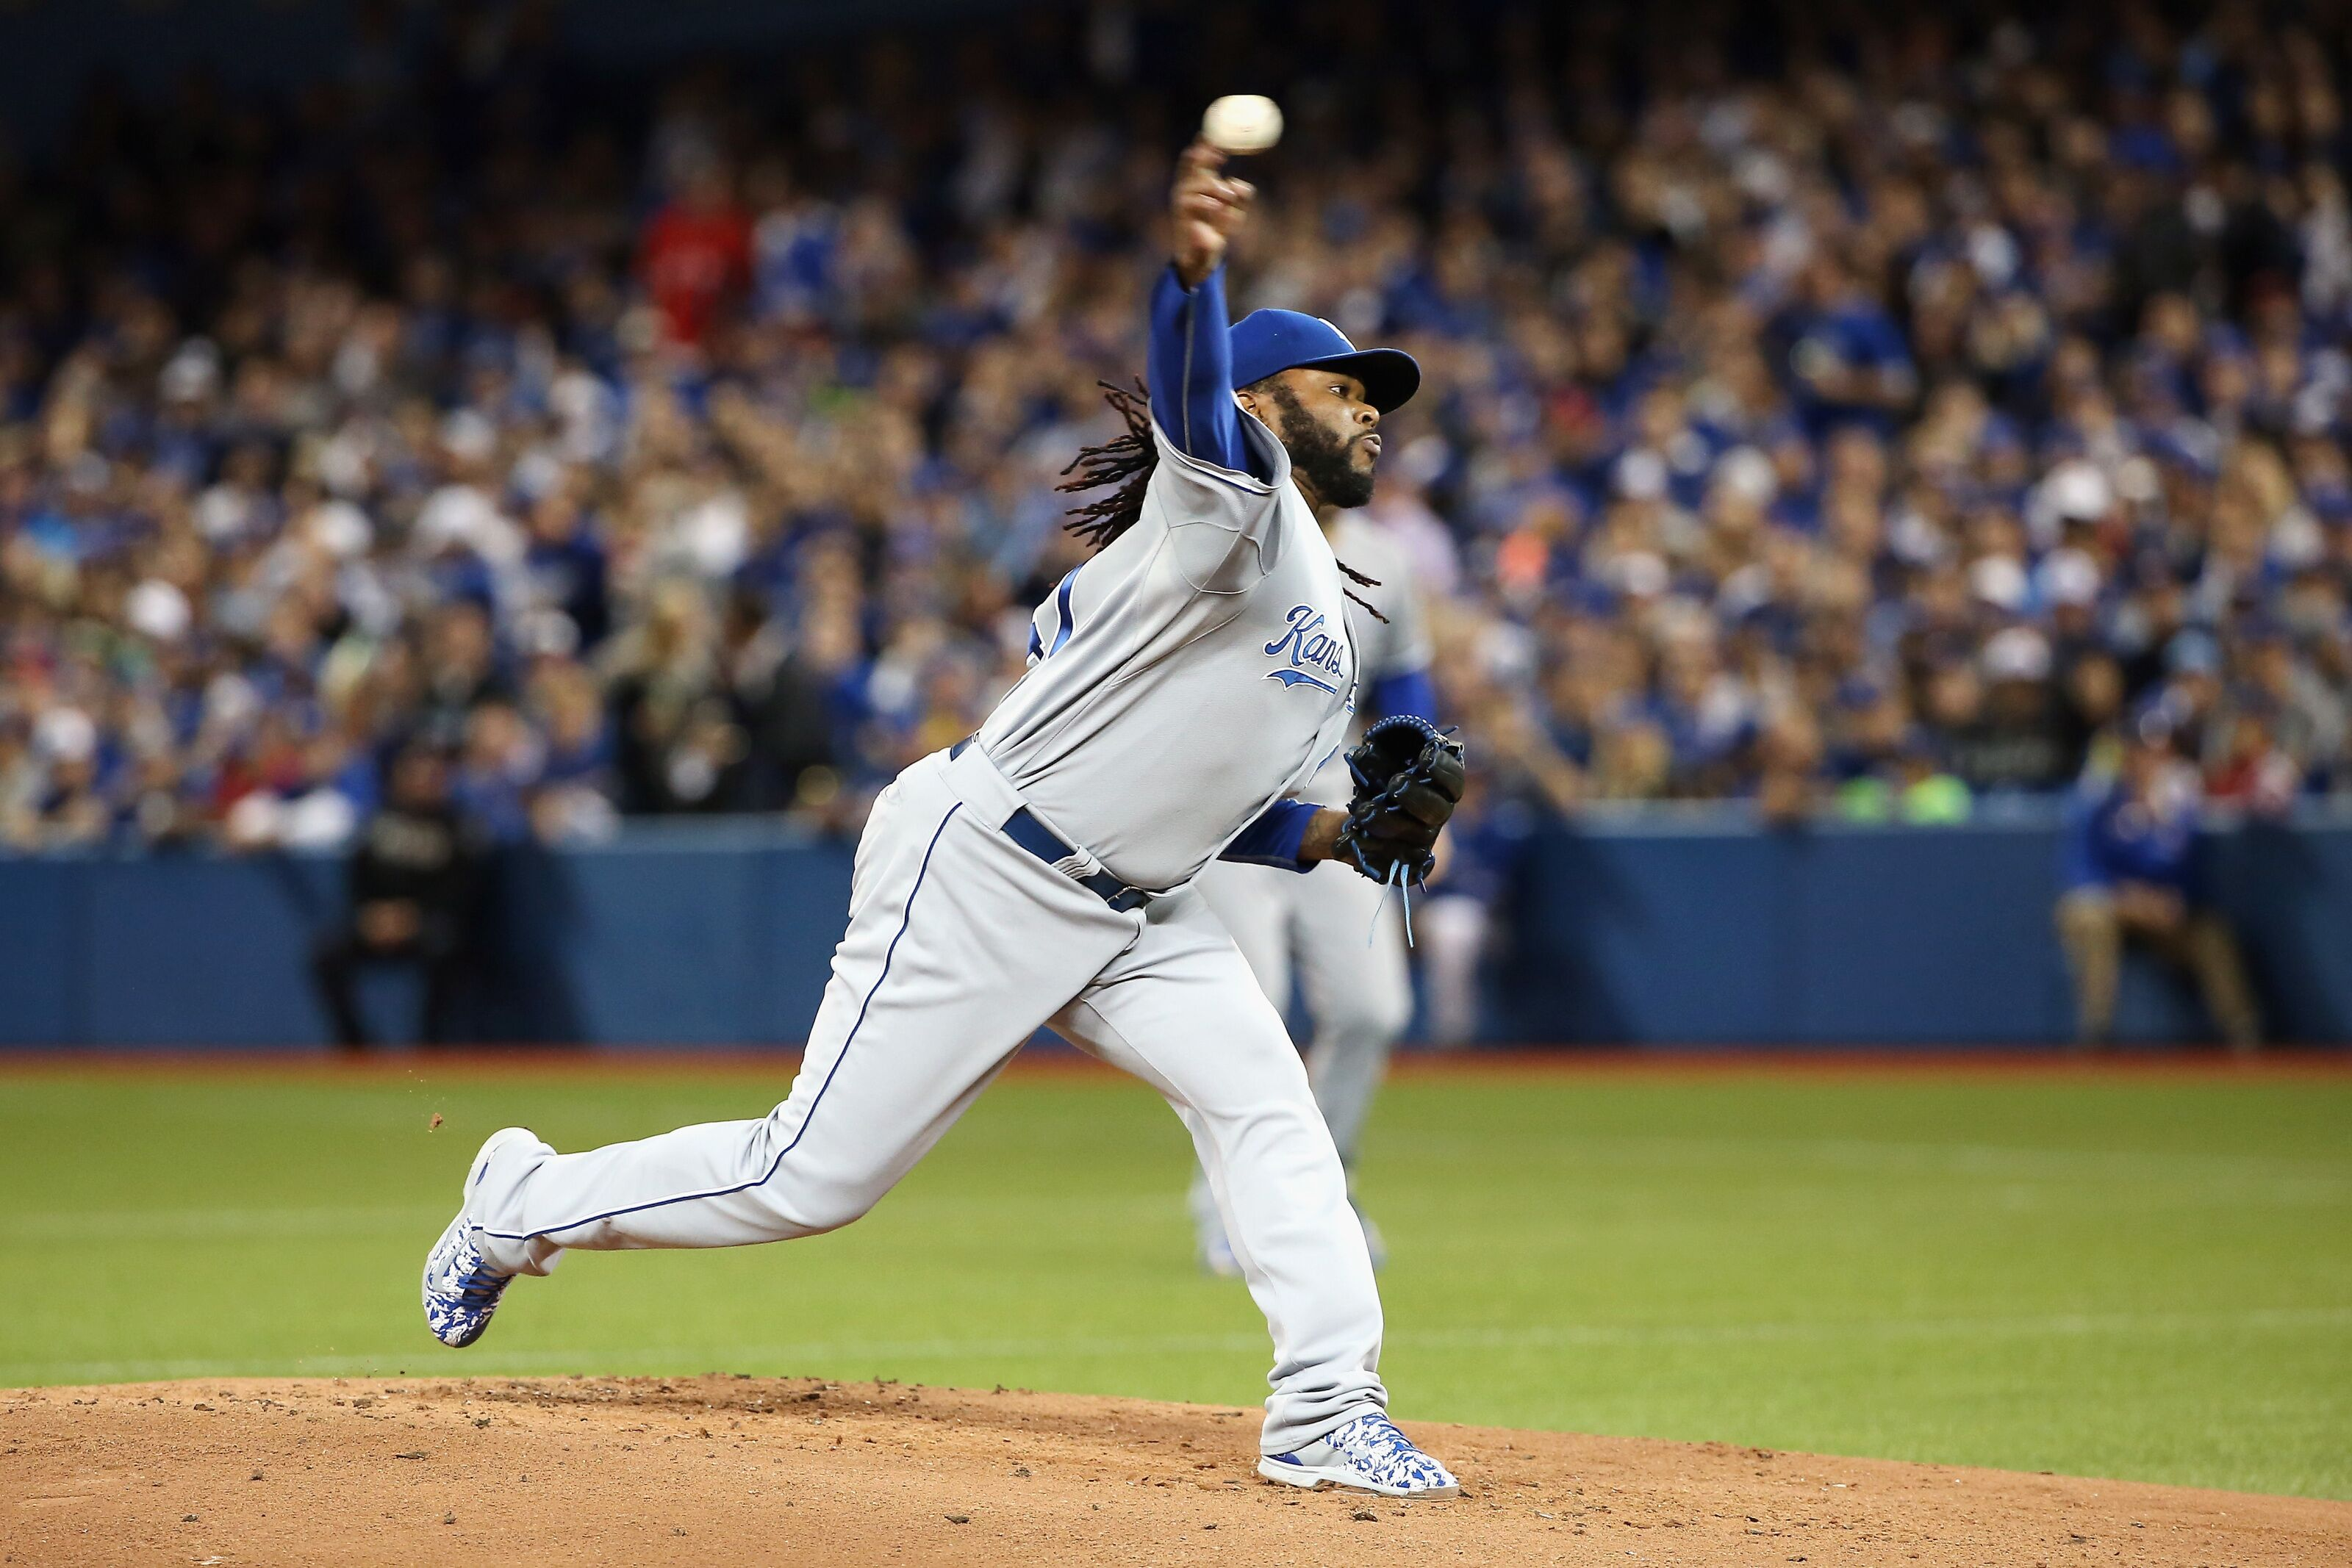 Kansas City Royals: Revisiting the 2015 ALCS Game 3